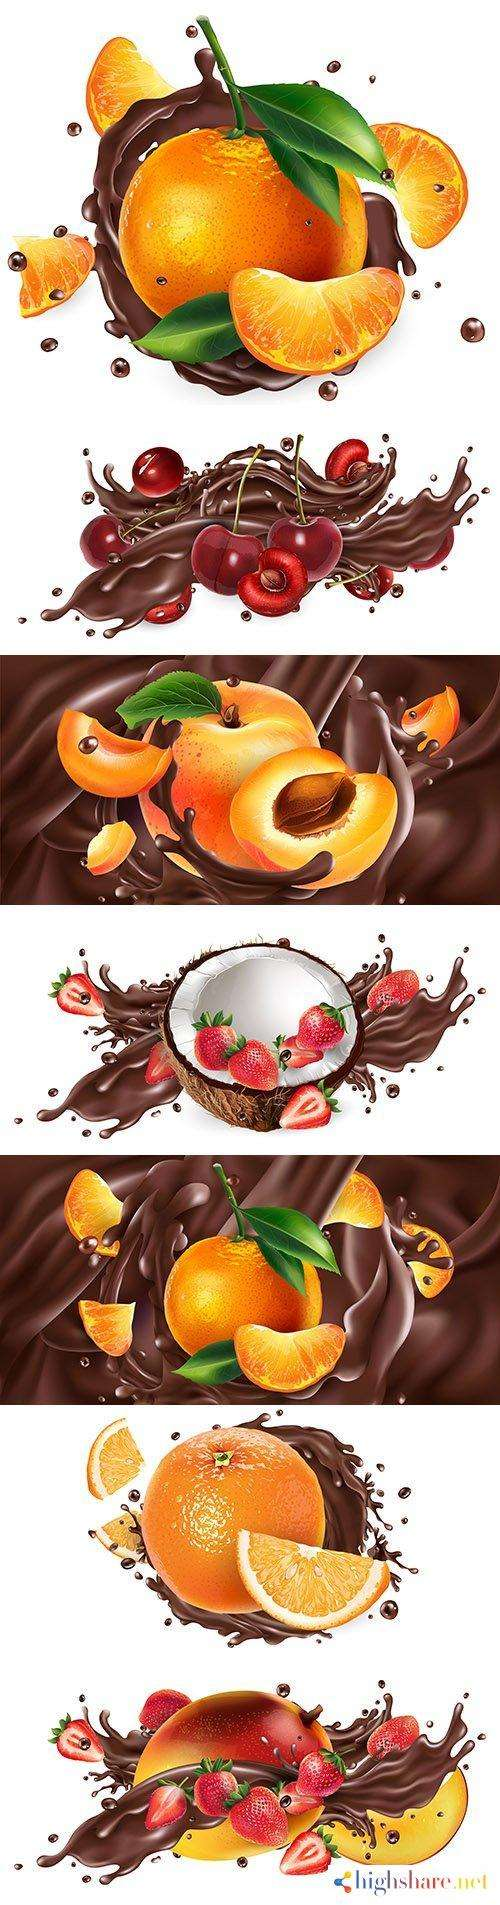 whole and chopped fruit in chocolate splash realistic illustrations 2 5f42005bc797c - Whole and chopped fruit in chocolate splash realistic illustrations 2